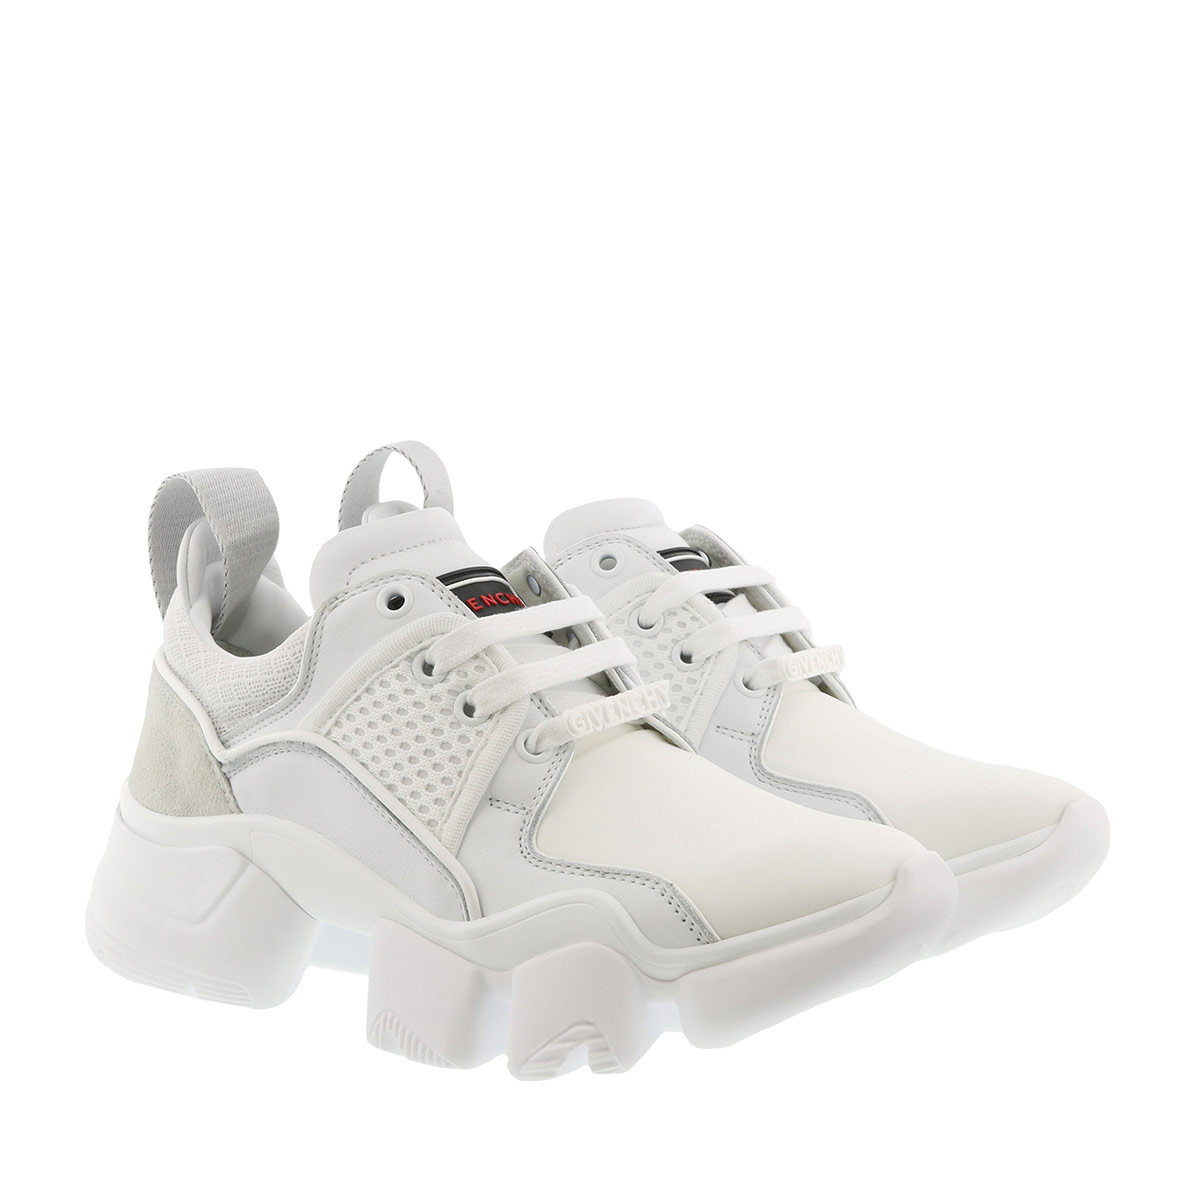 Givenchy Sneakers - Low JAW Sneakers Neoprene Leather White - in weiß - für Damen